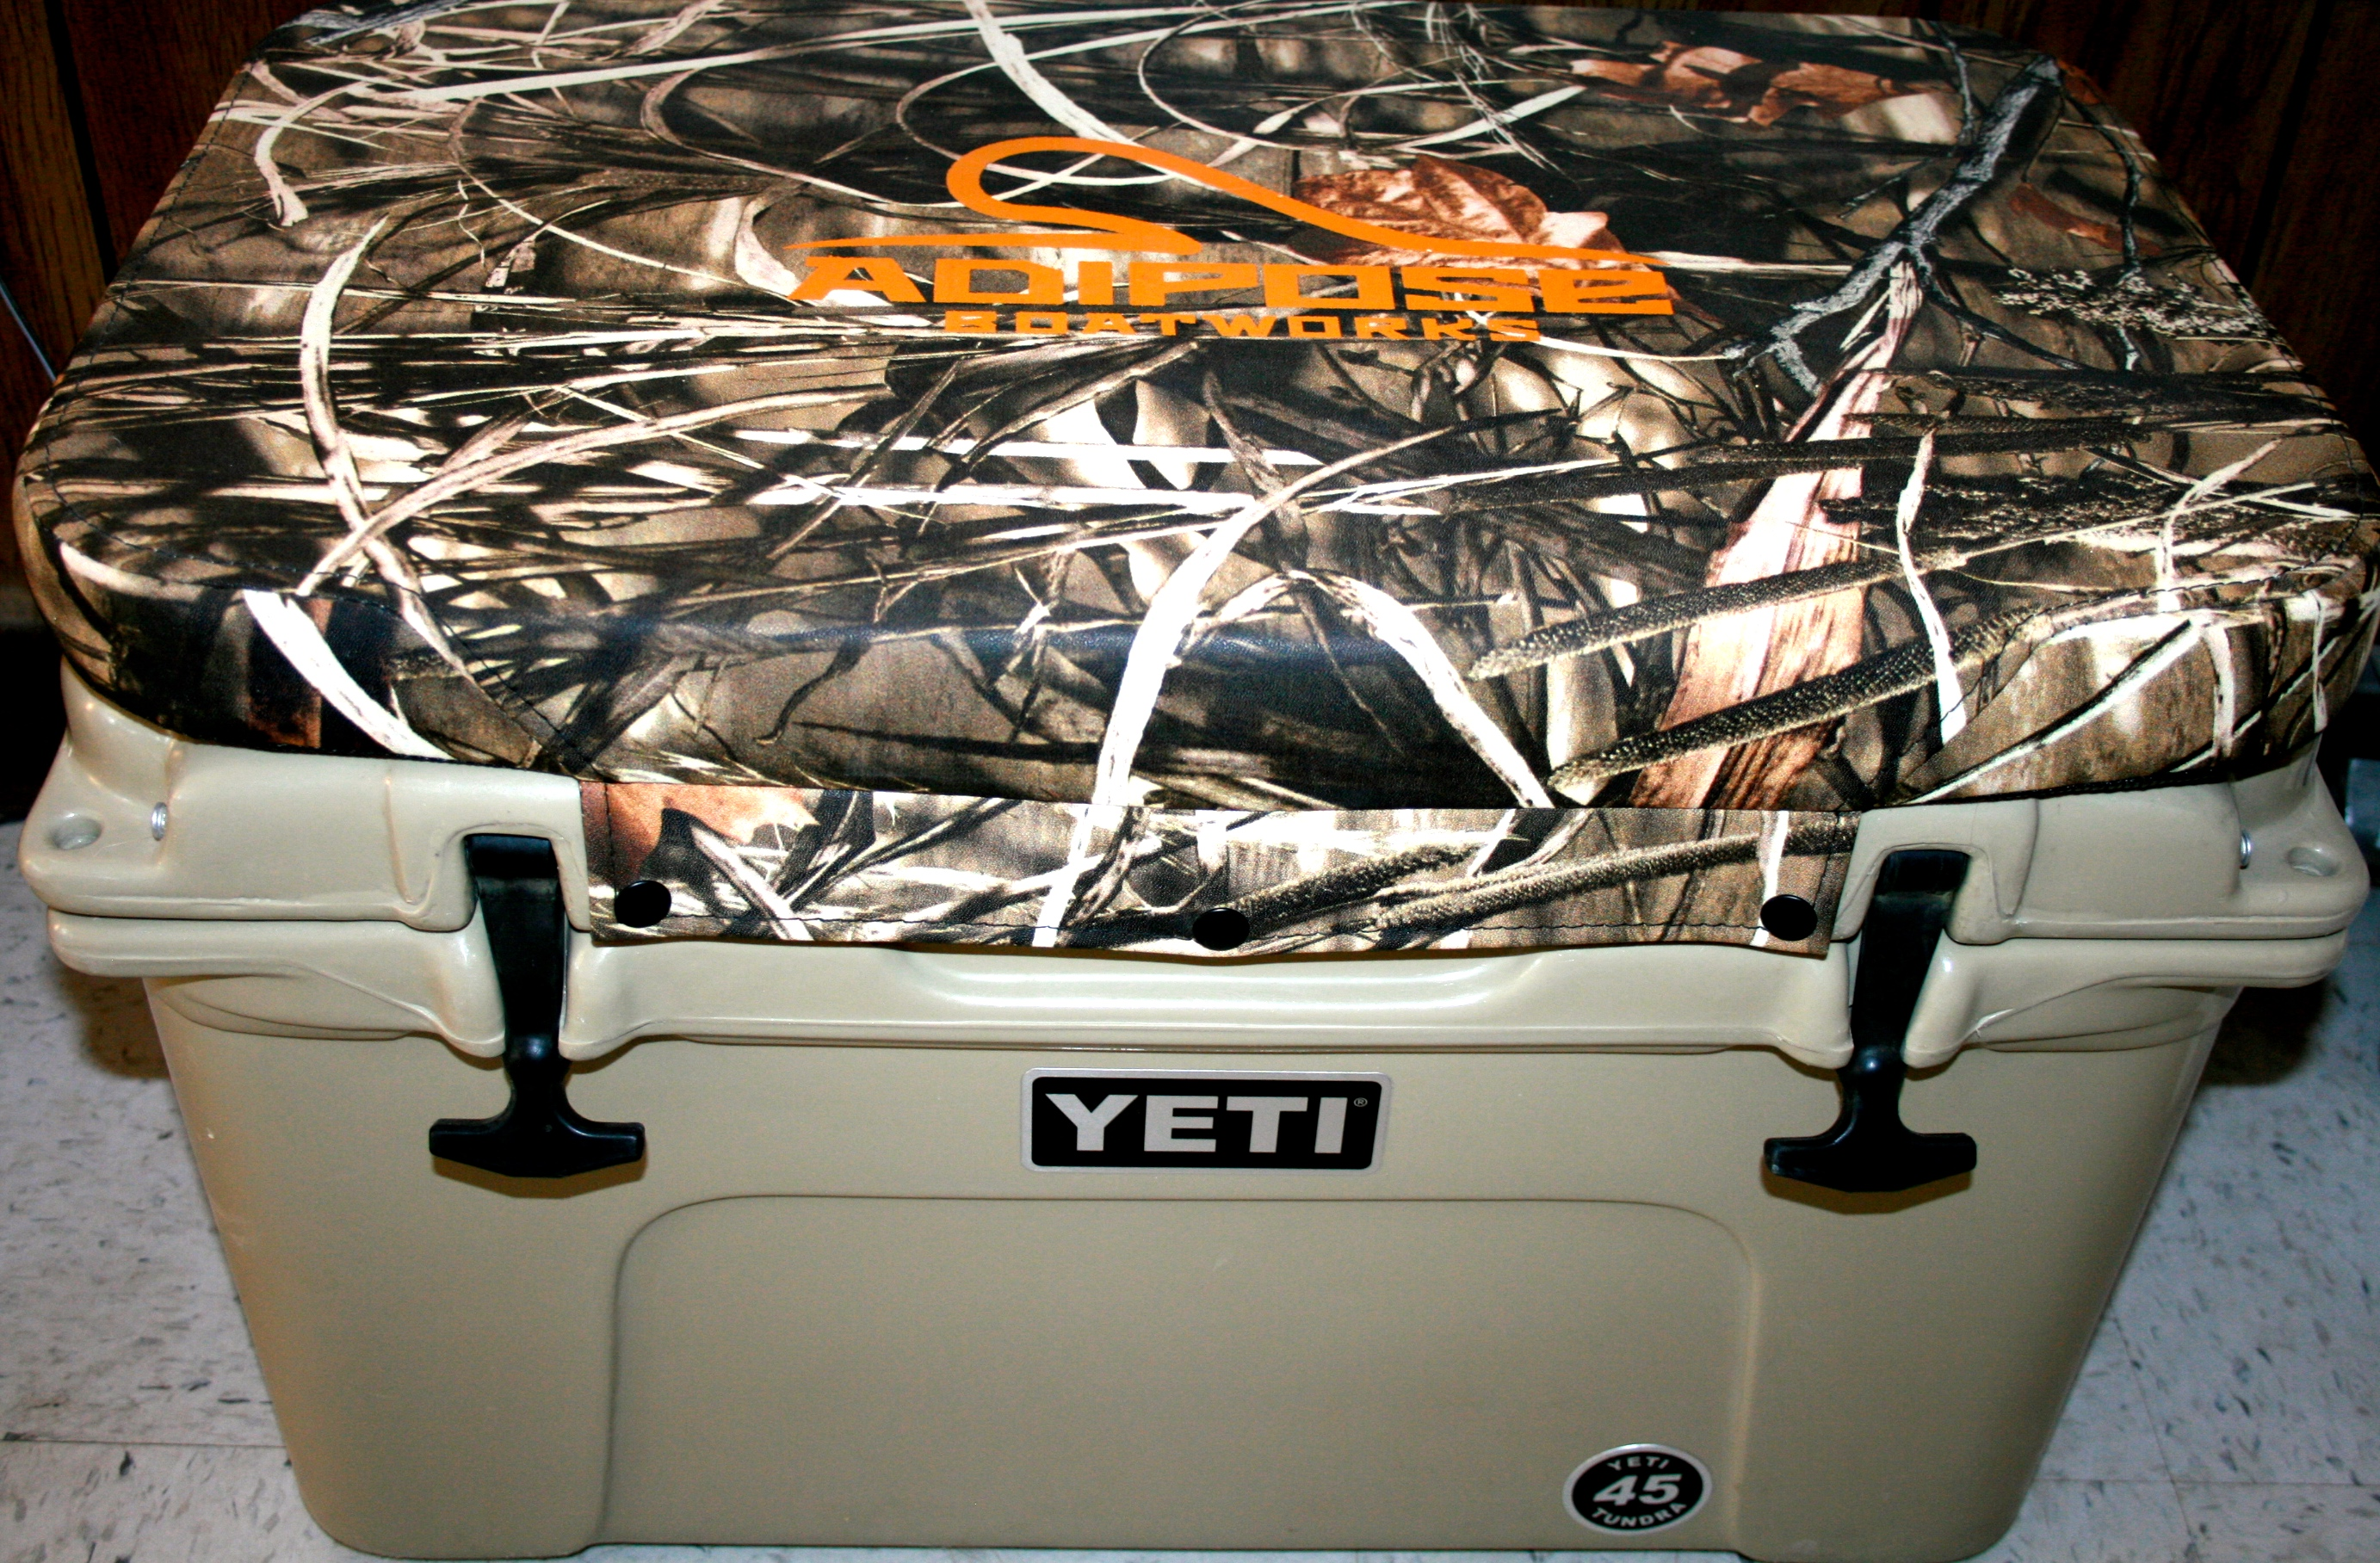 Yeti Coolers & Accessories | Adipose Boatworks